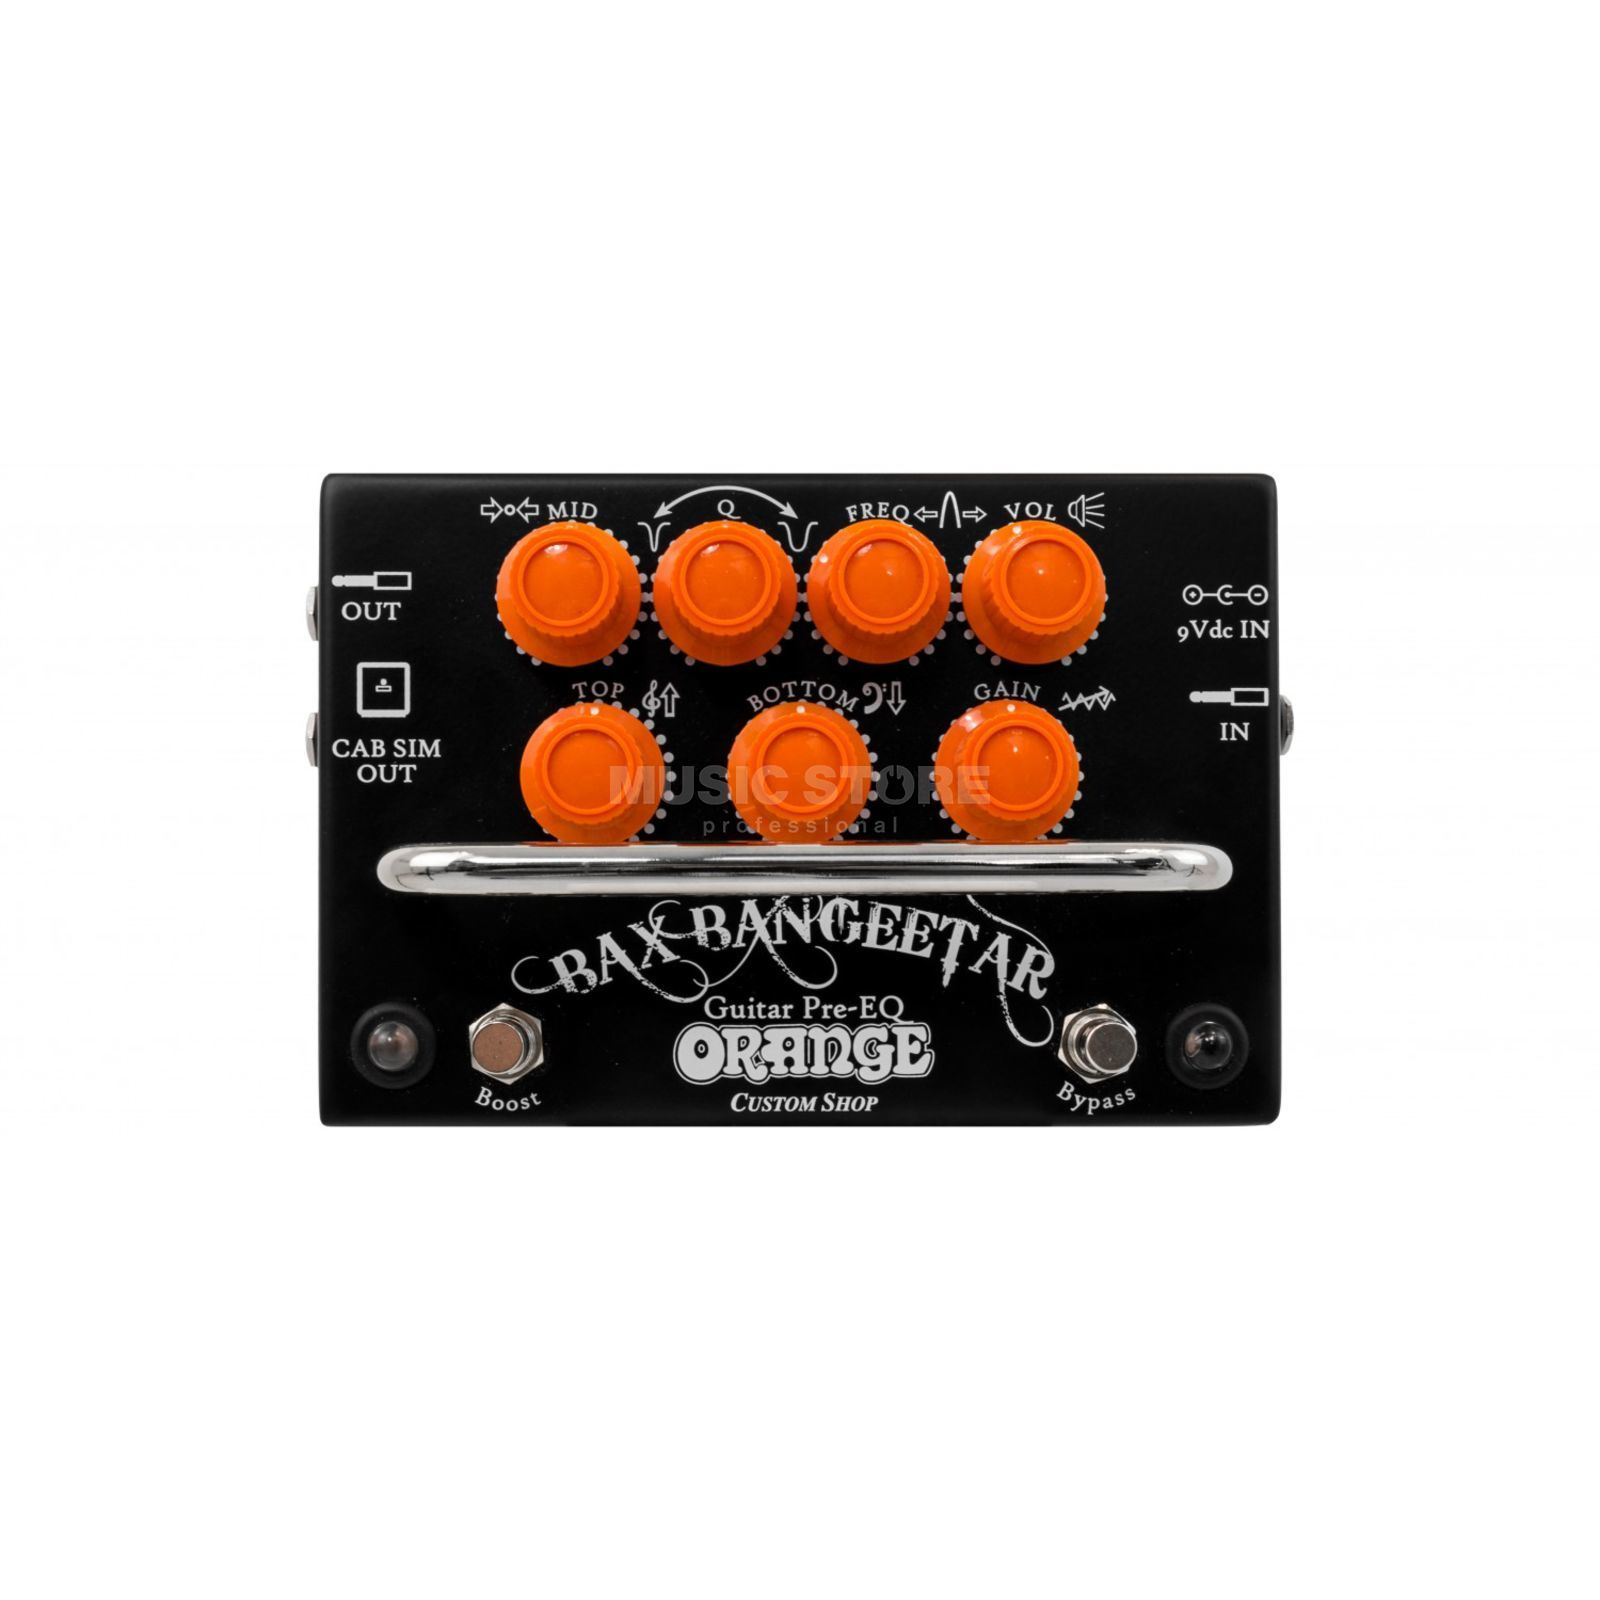 Orange Bax Bangeetar Guitar Pre-EQ Black Produktbild